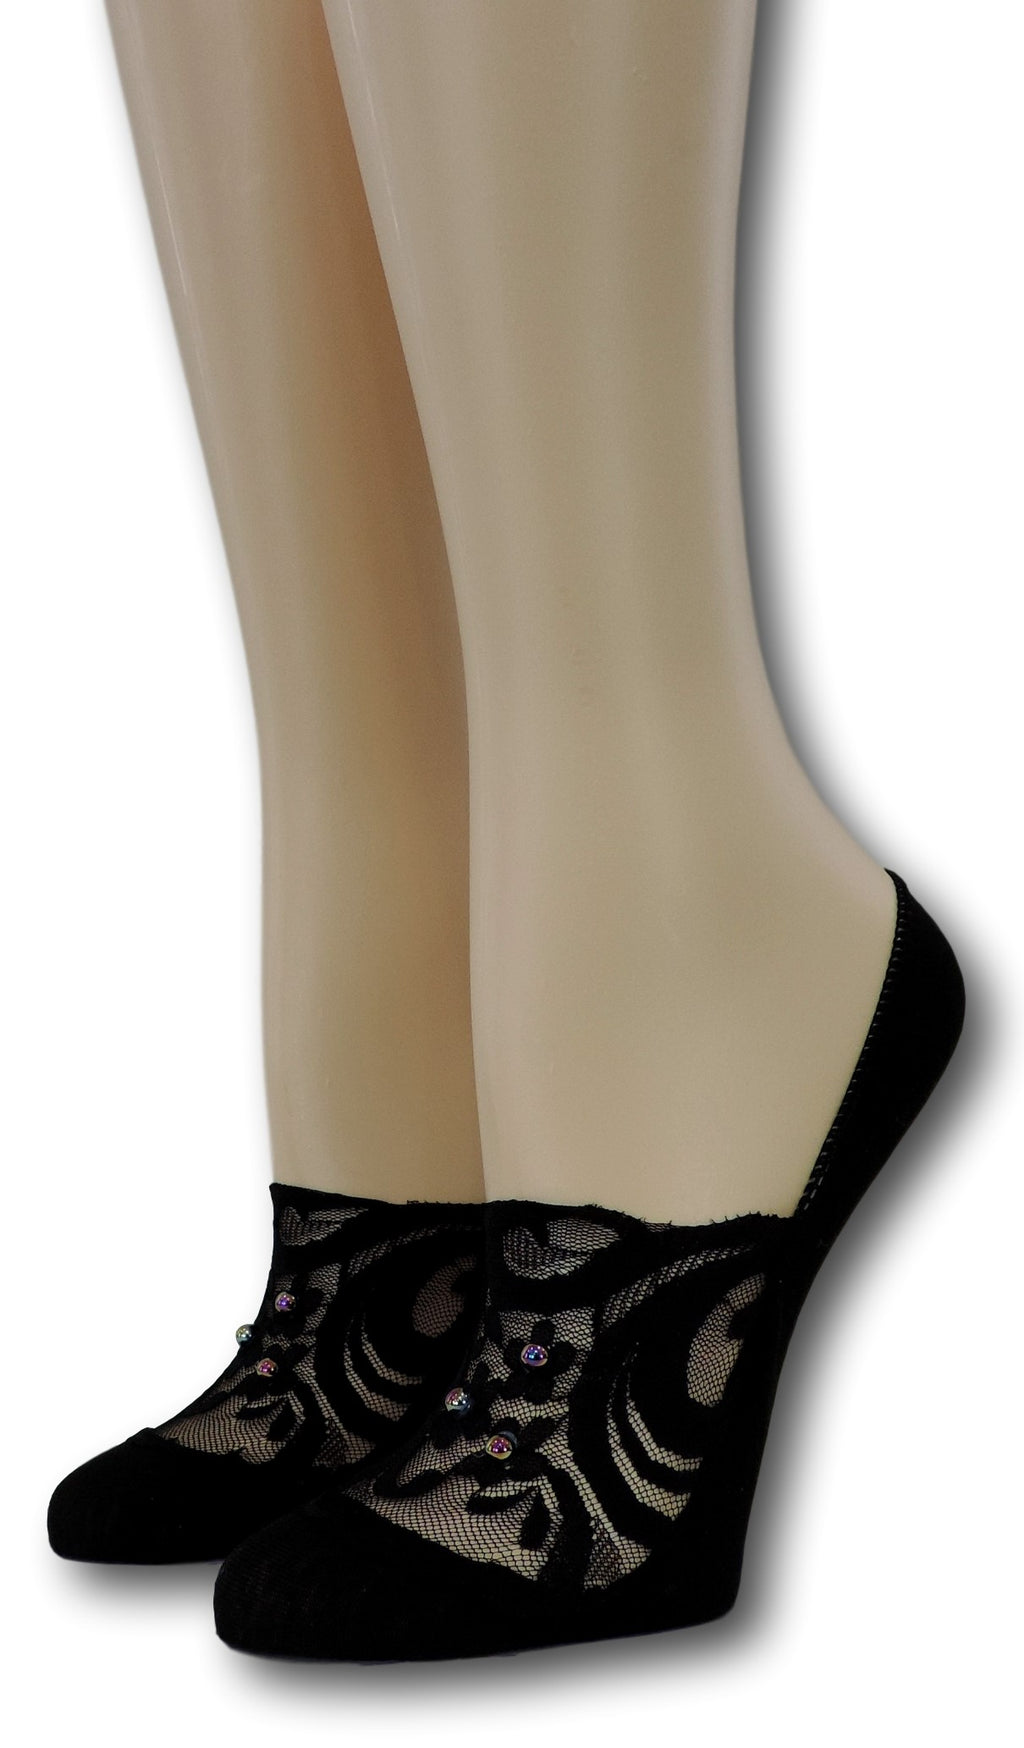 Exotic Black No Show Sheer Socks with beads